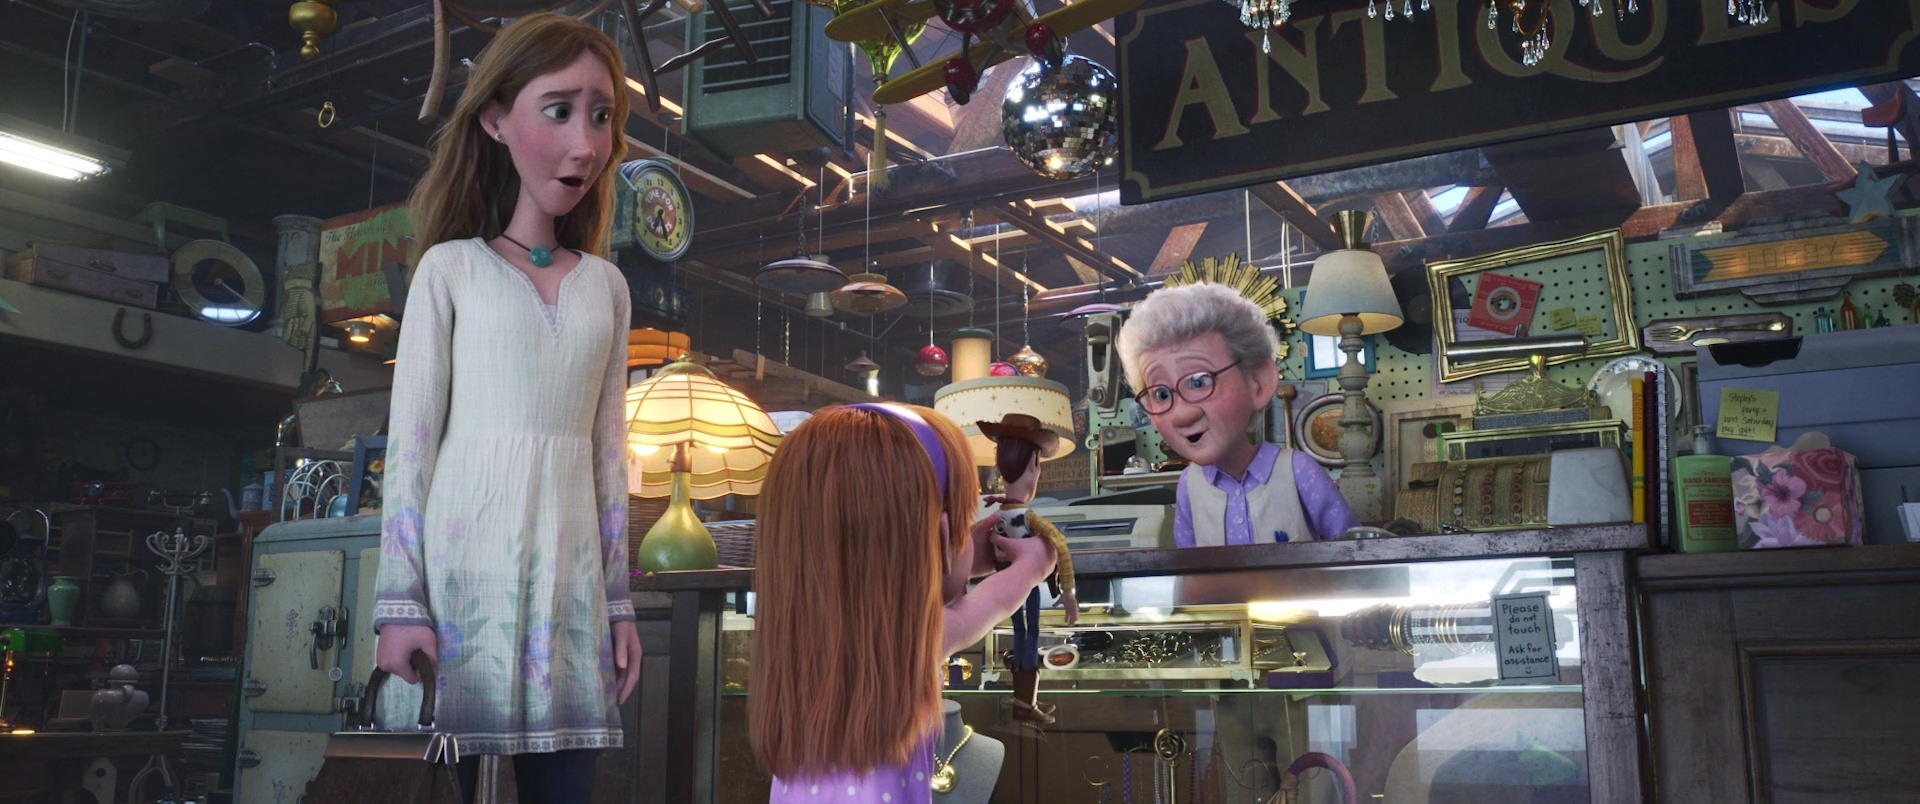 mere-harmony-personnage-toy-story-4-01